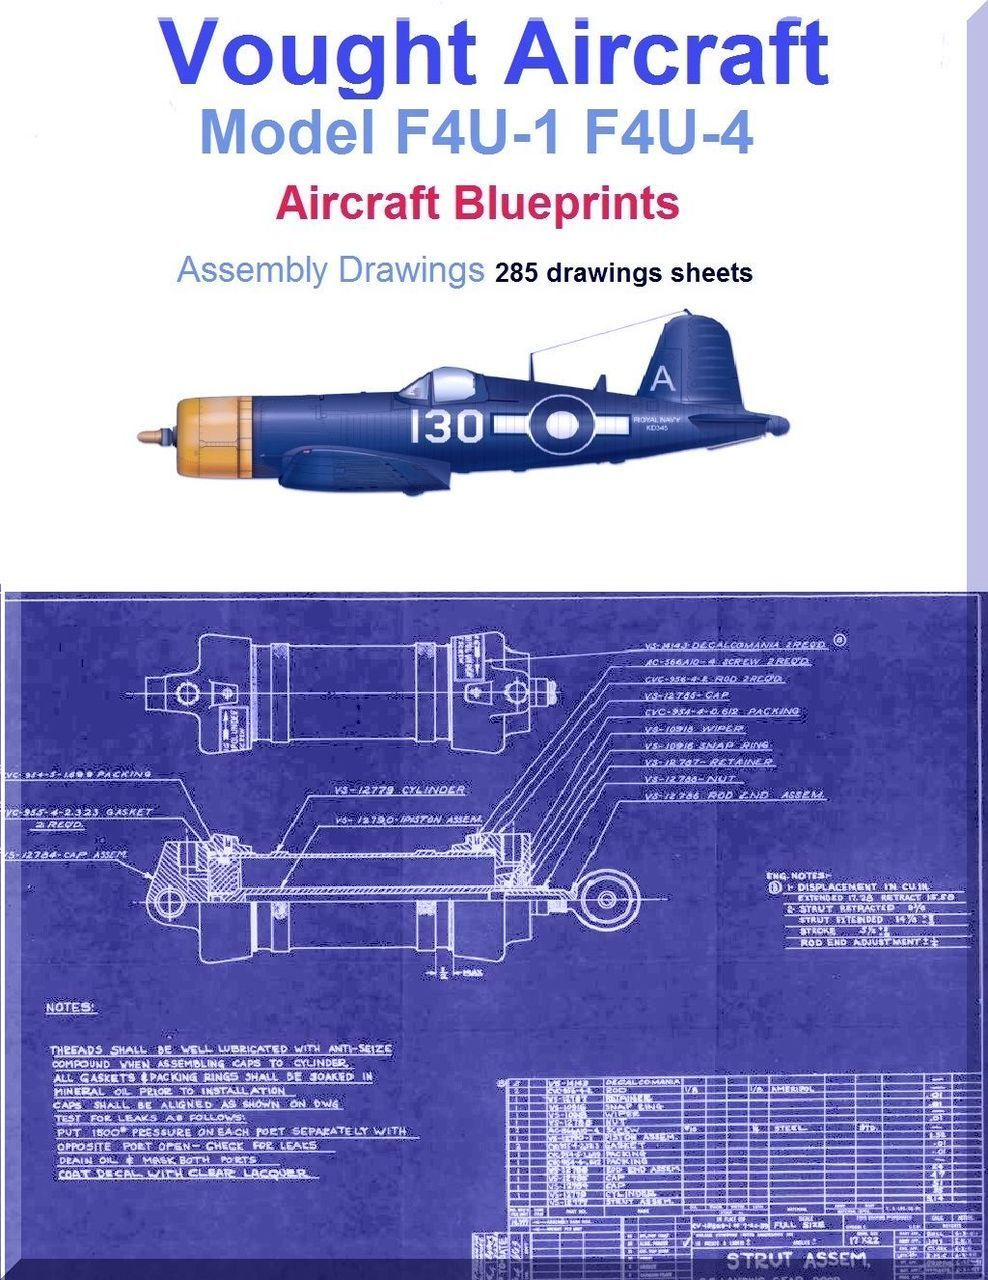 Vought F4U-1 F4U-4 Aircraft Blueprints Assembly Drawings - Download -  Aircraft Reports - Aircraft Manuals - Aircraft Helicopter Engines  Propellers ...